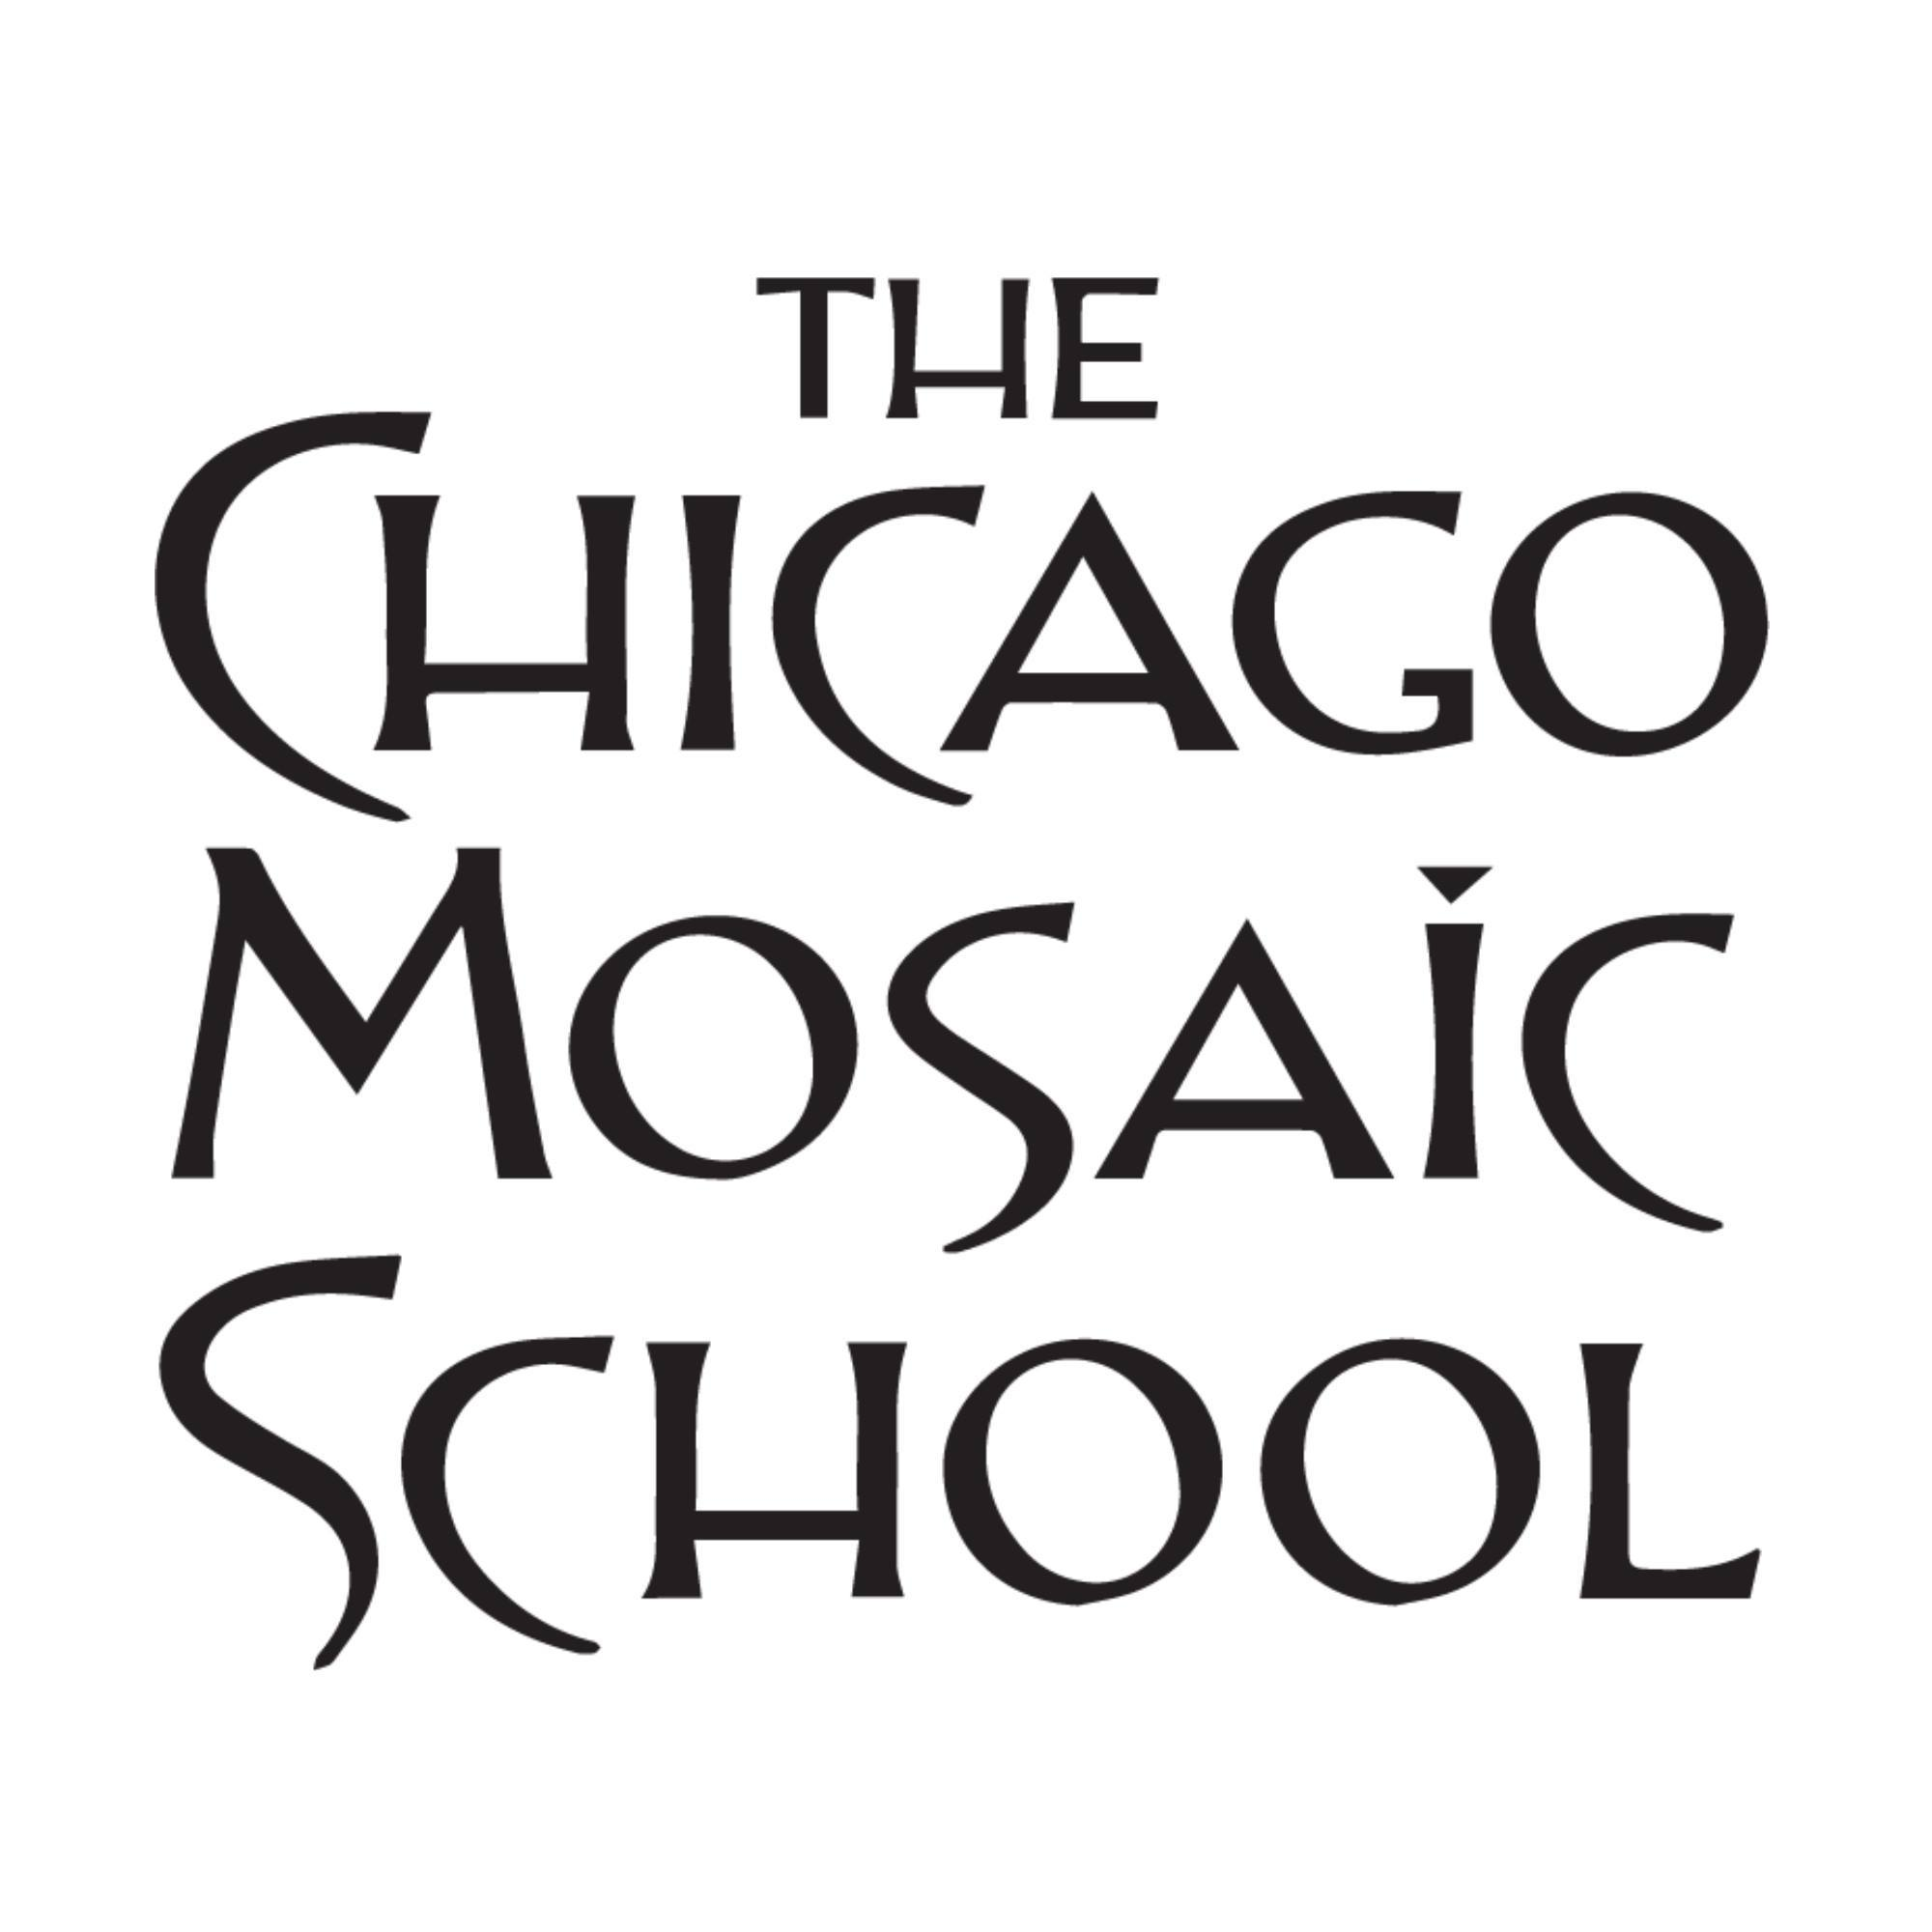 The Chicago Mosaic School